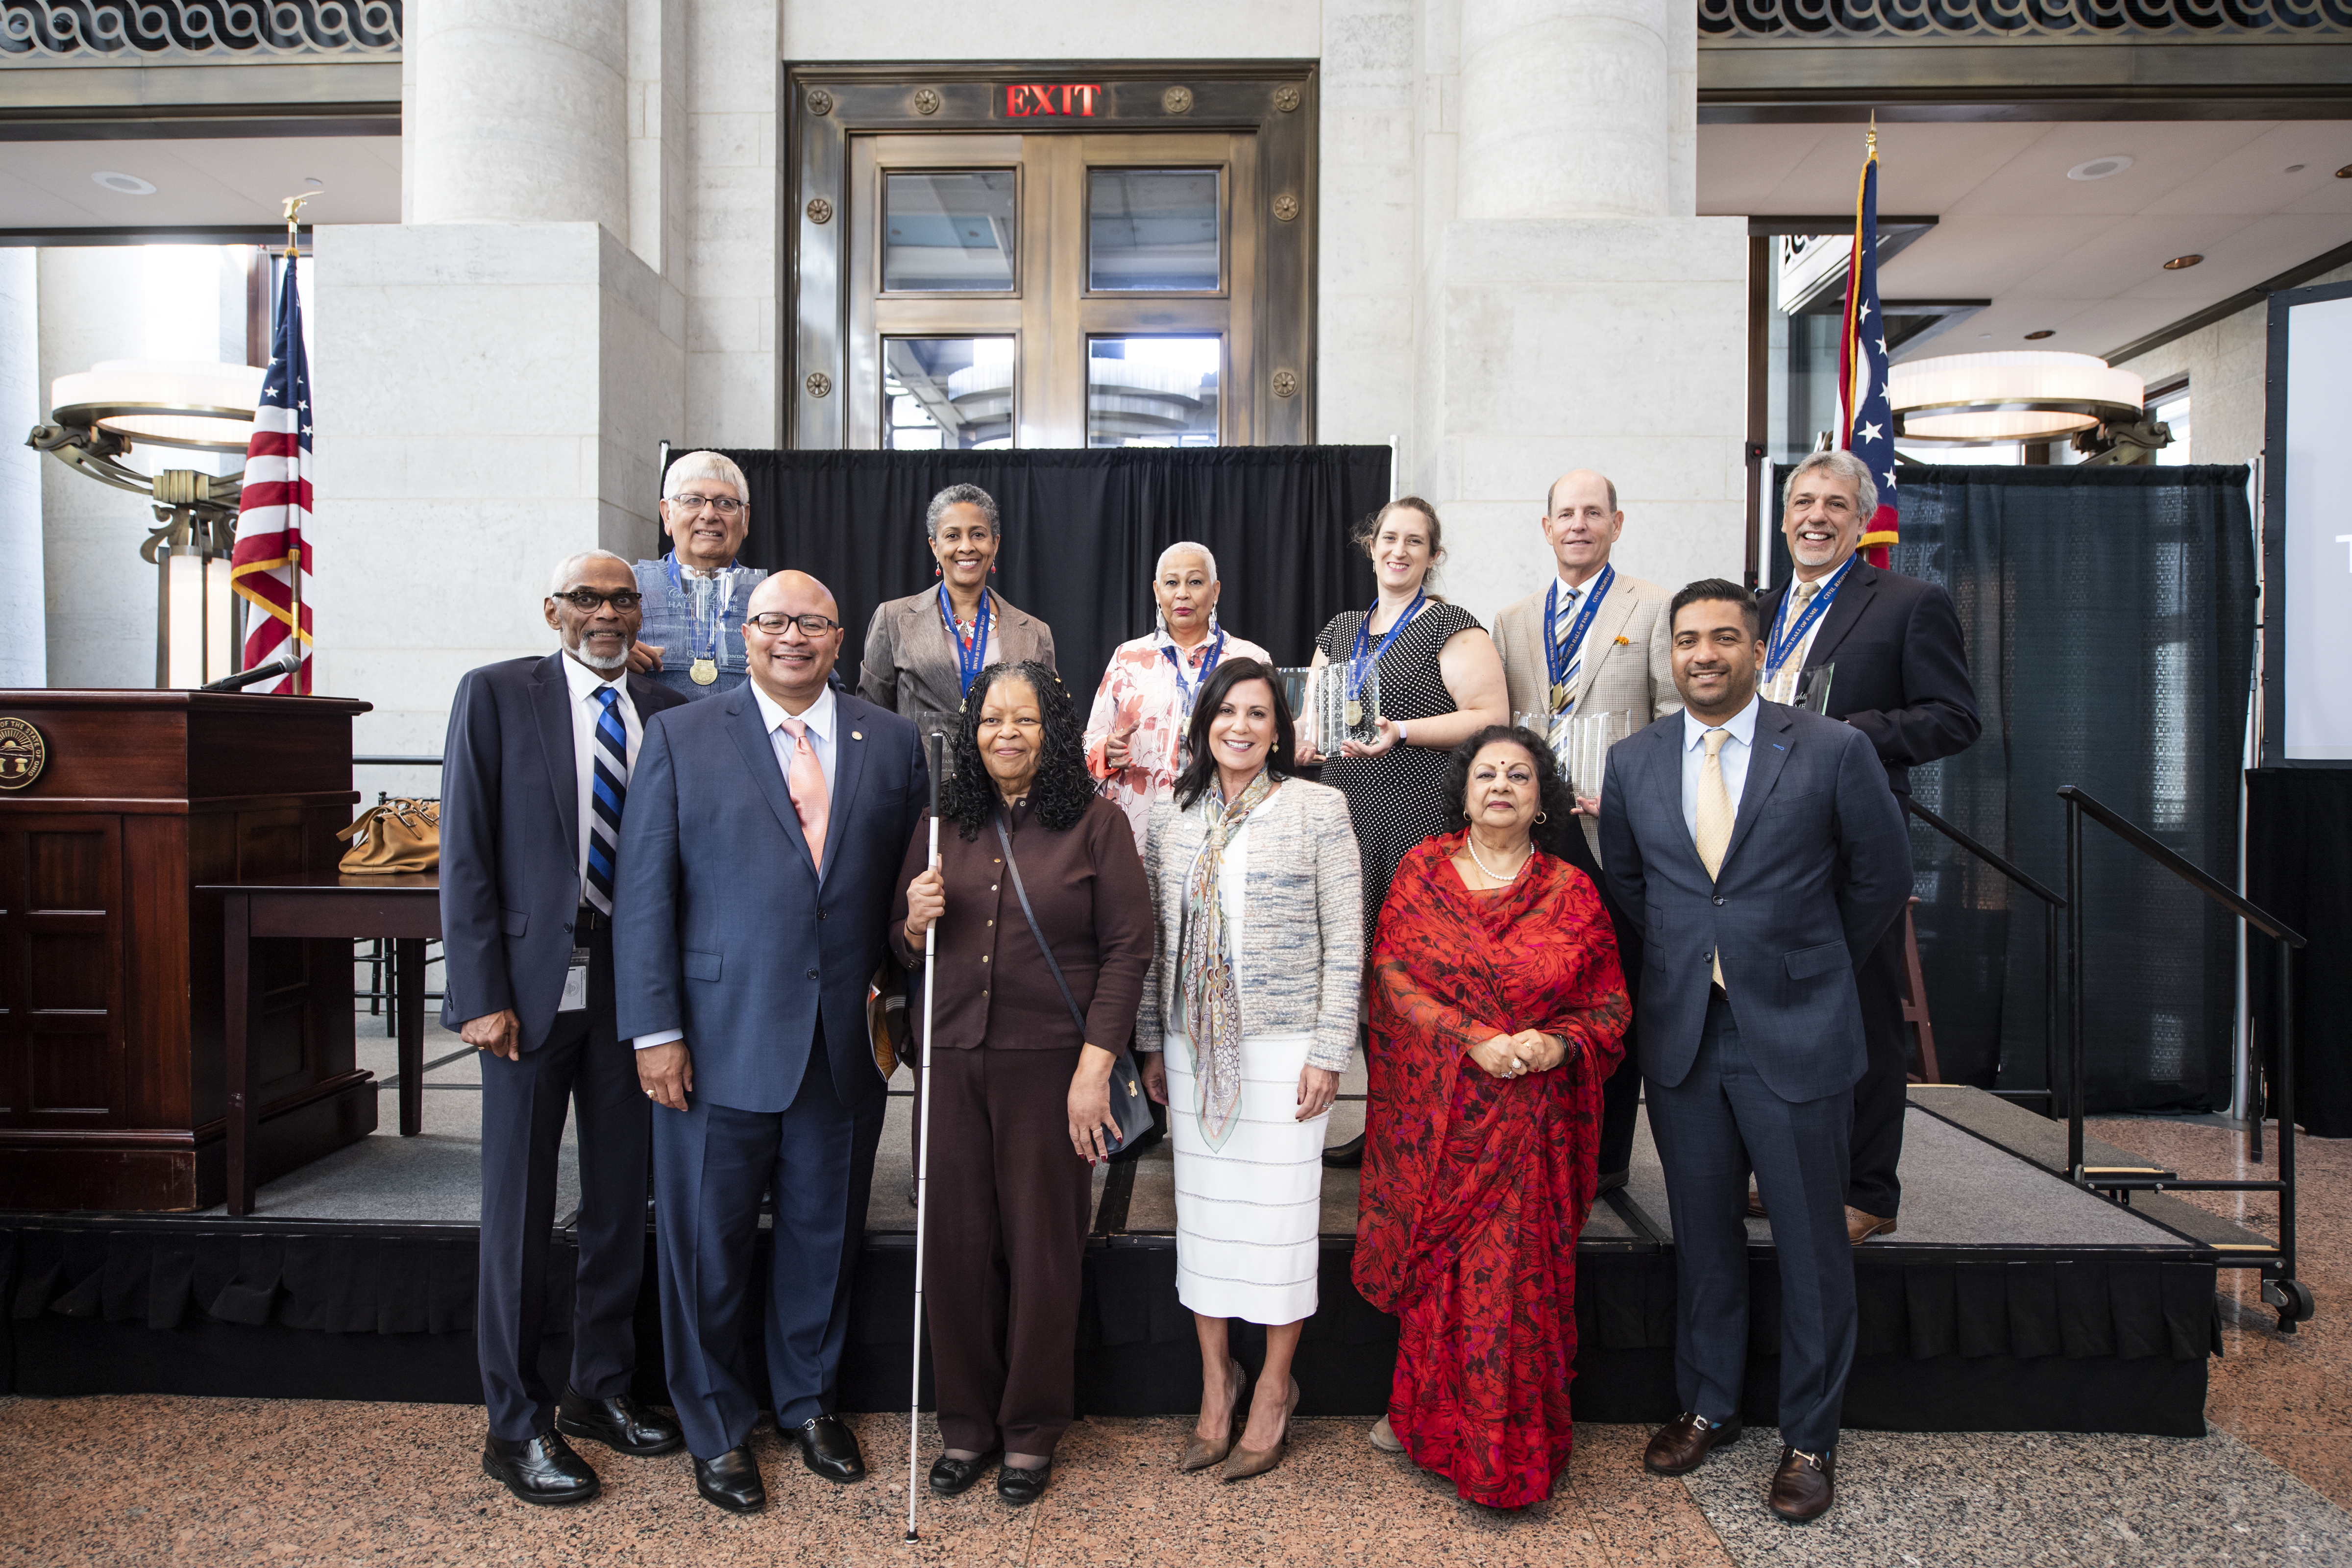 photo of Commissioners and the 2019 inductees of the Ohio Civil Rights Hall of Fame